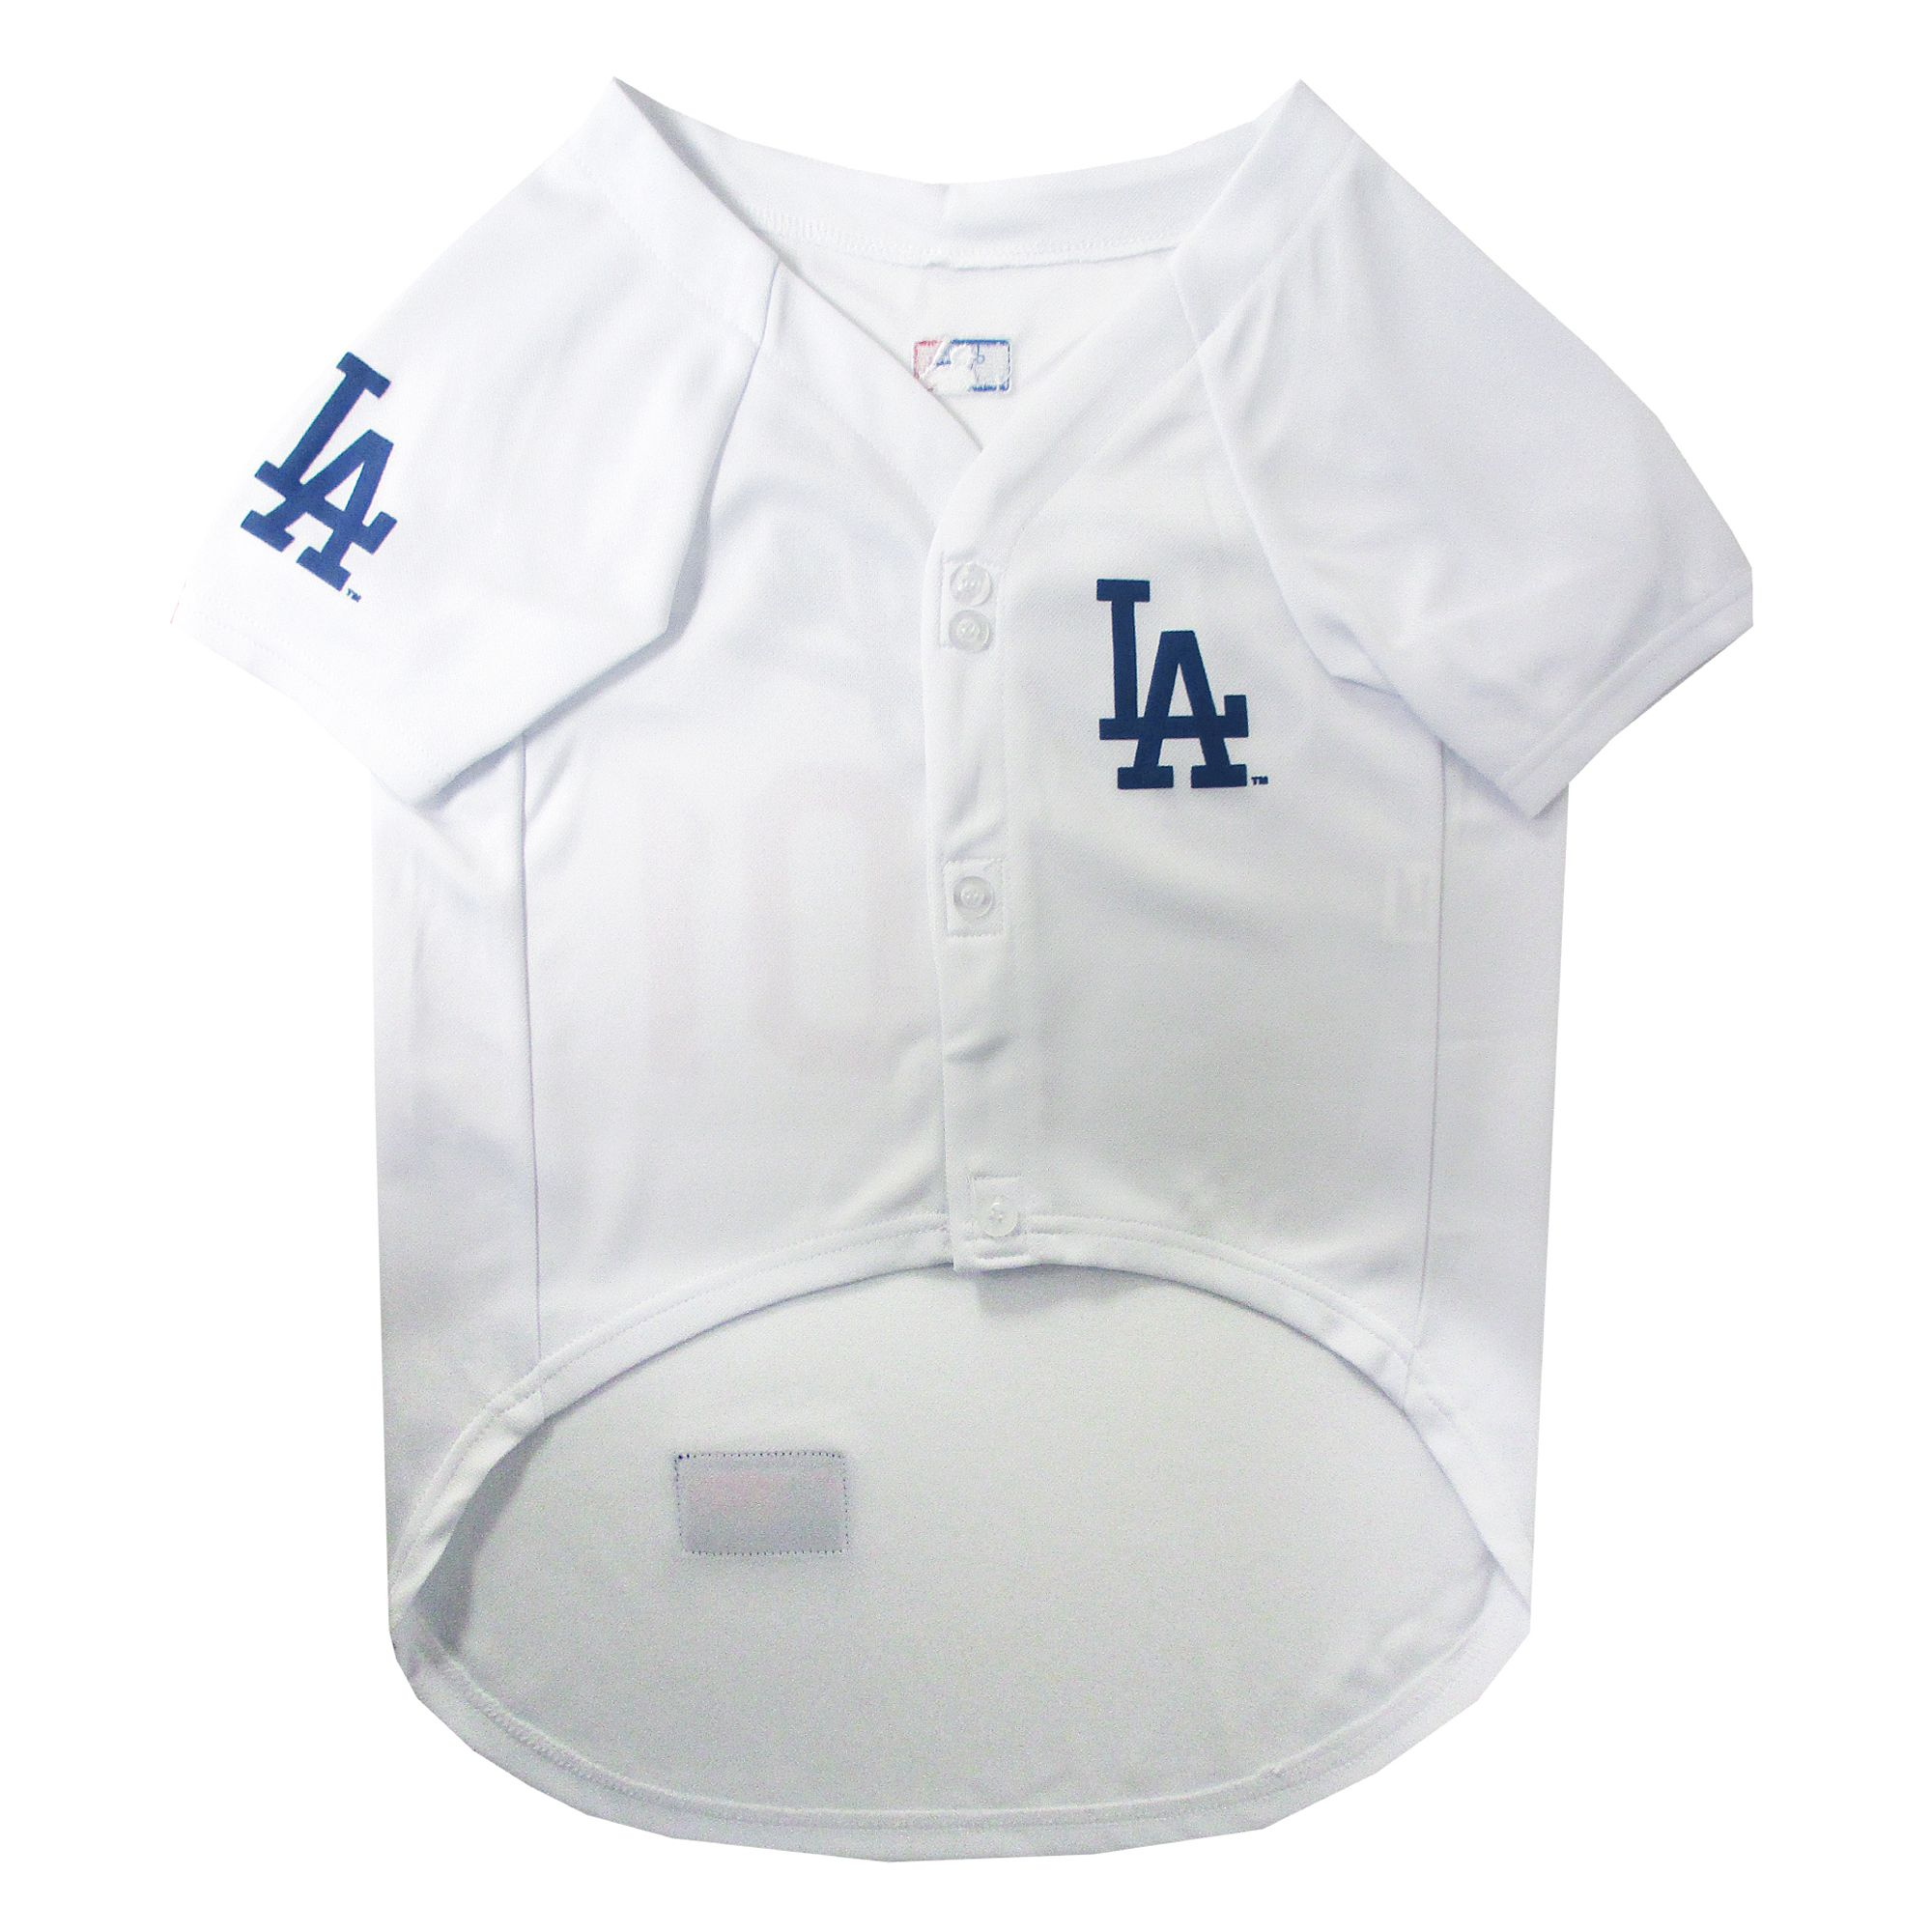 NEW MLB Dog Puppy Jersey Tshirt T Los Angeles Dodgers Small Pet Tee Shirt